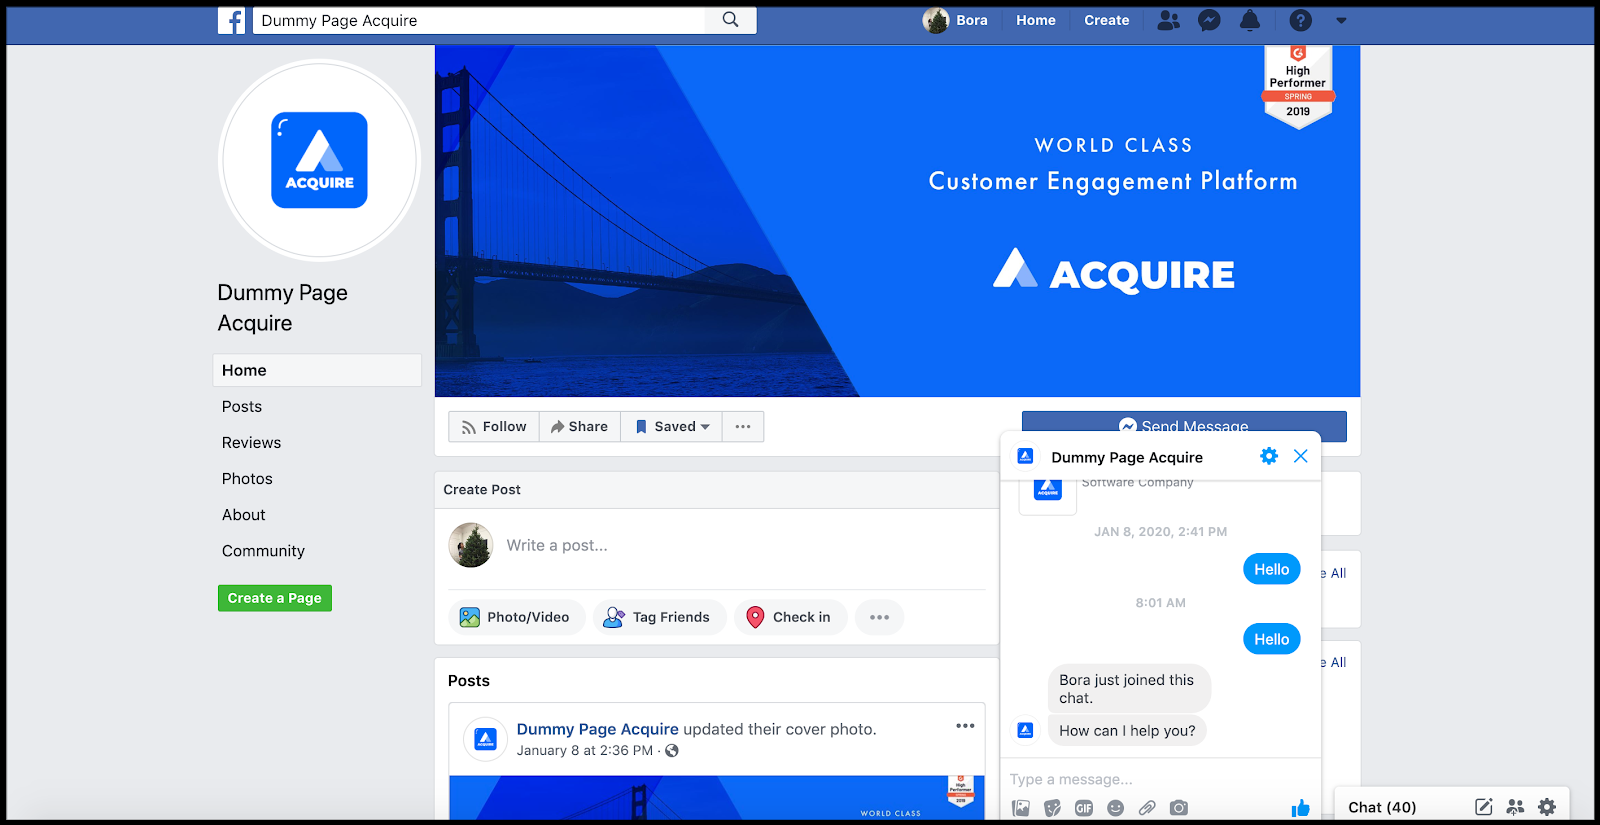 Support team replies back to customers within Acquire dashboard and customer receives it through facebook messenger